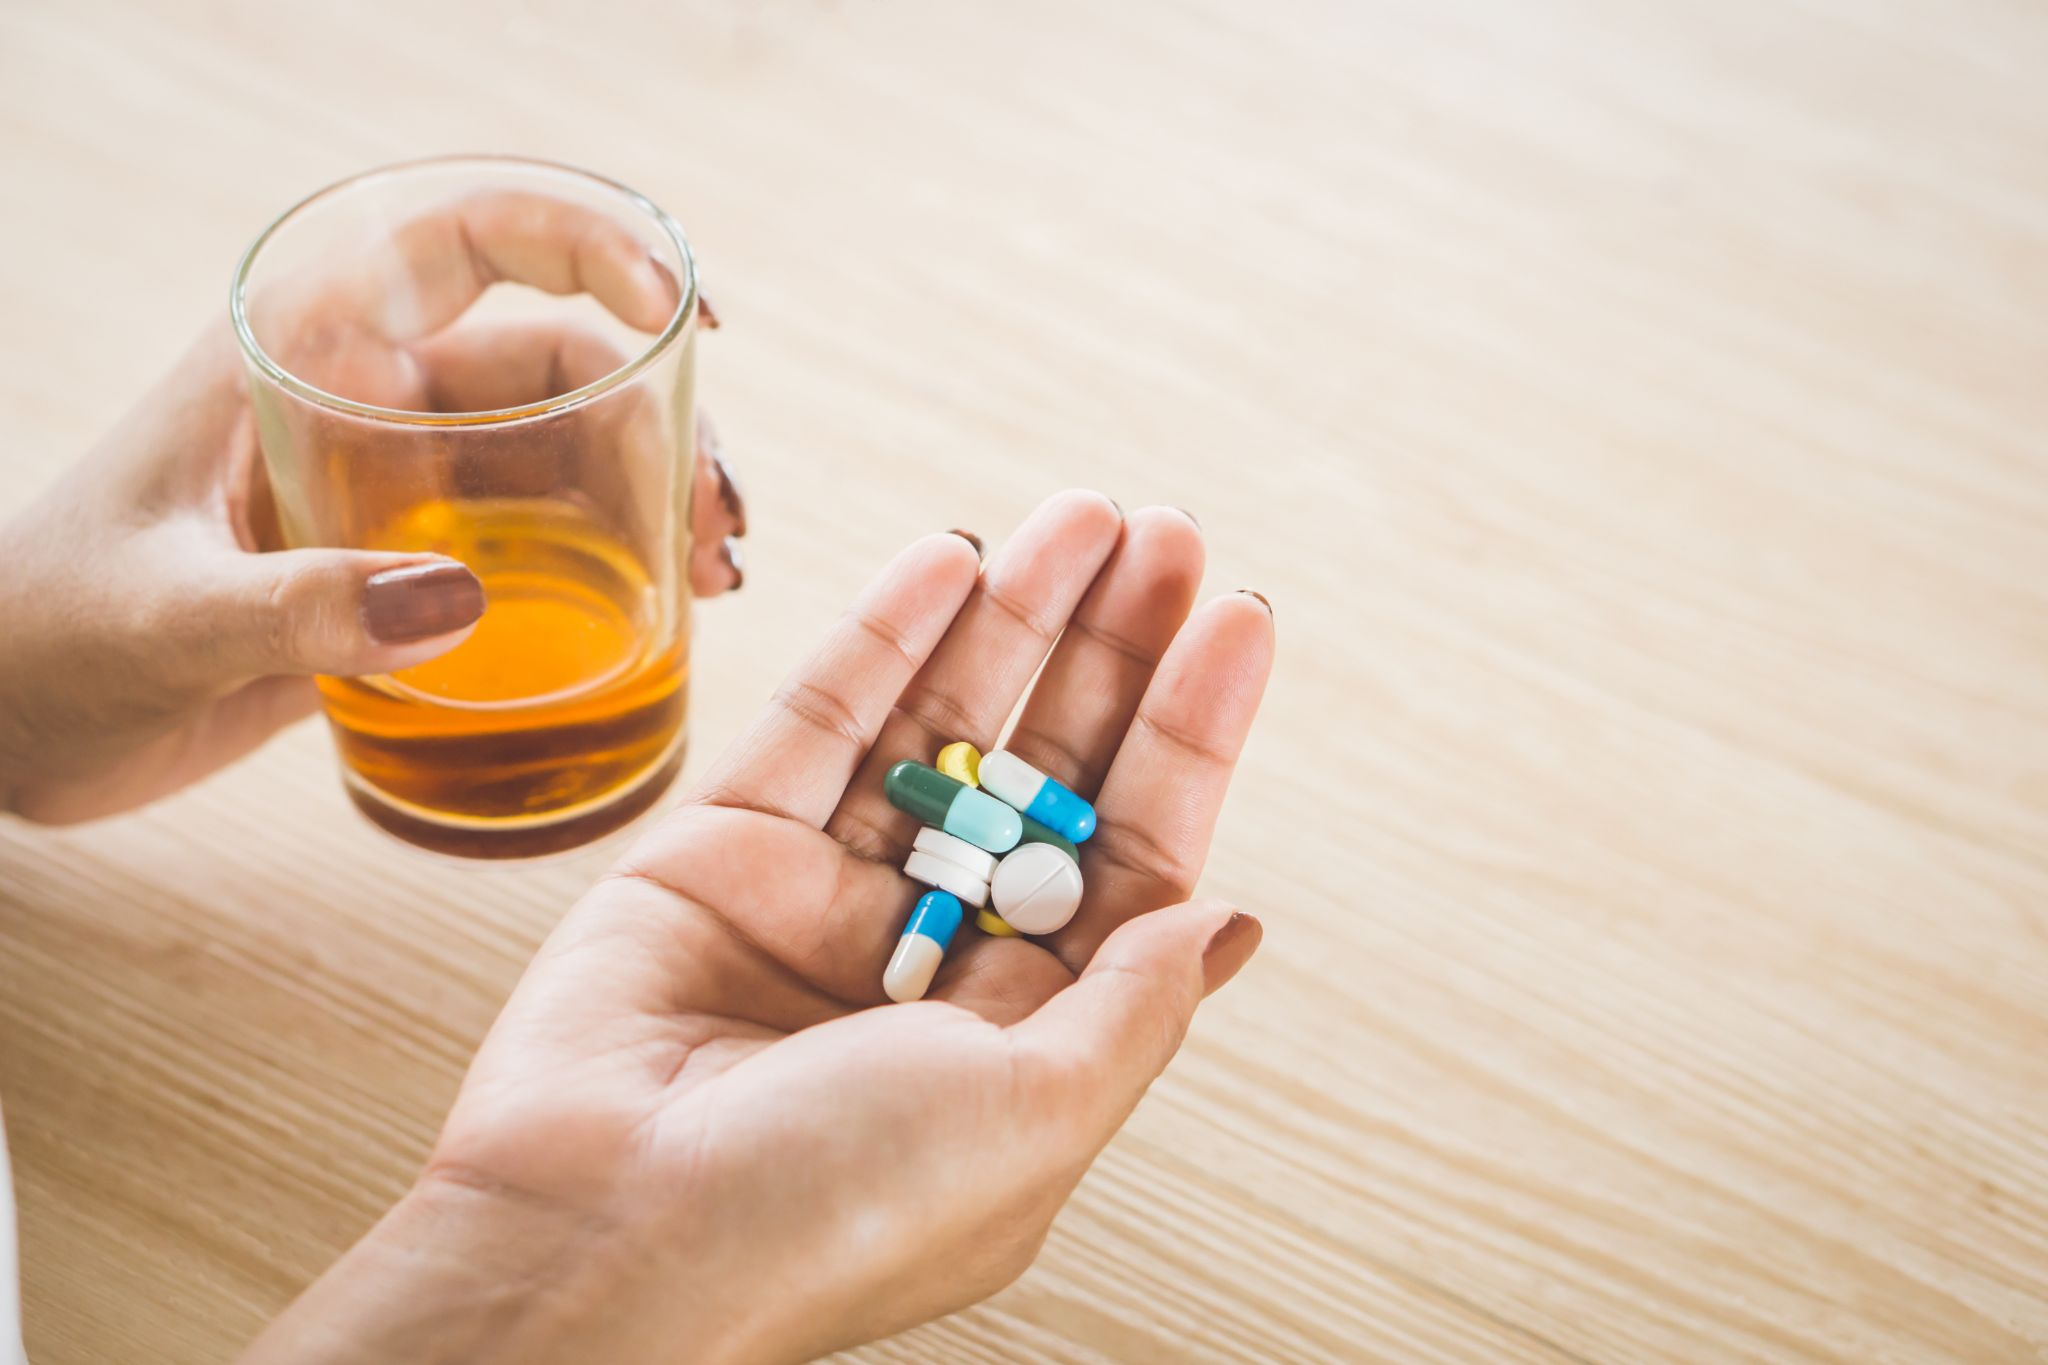 stress woman taking medicine with glass of alcohol